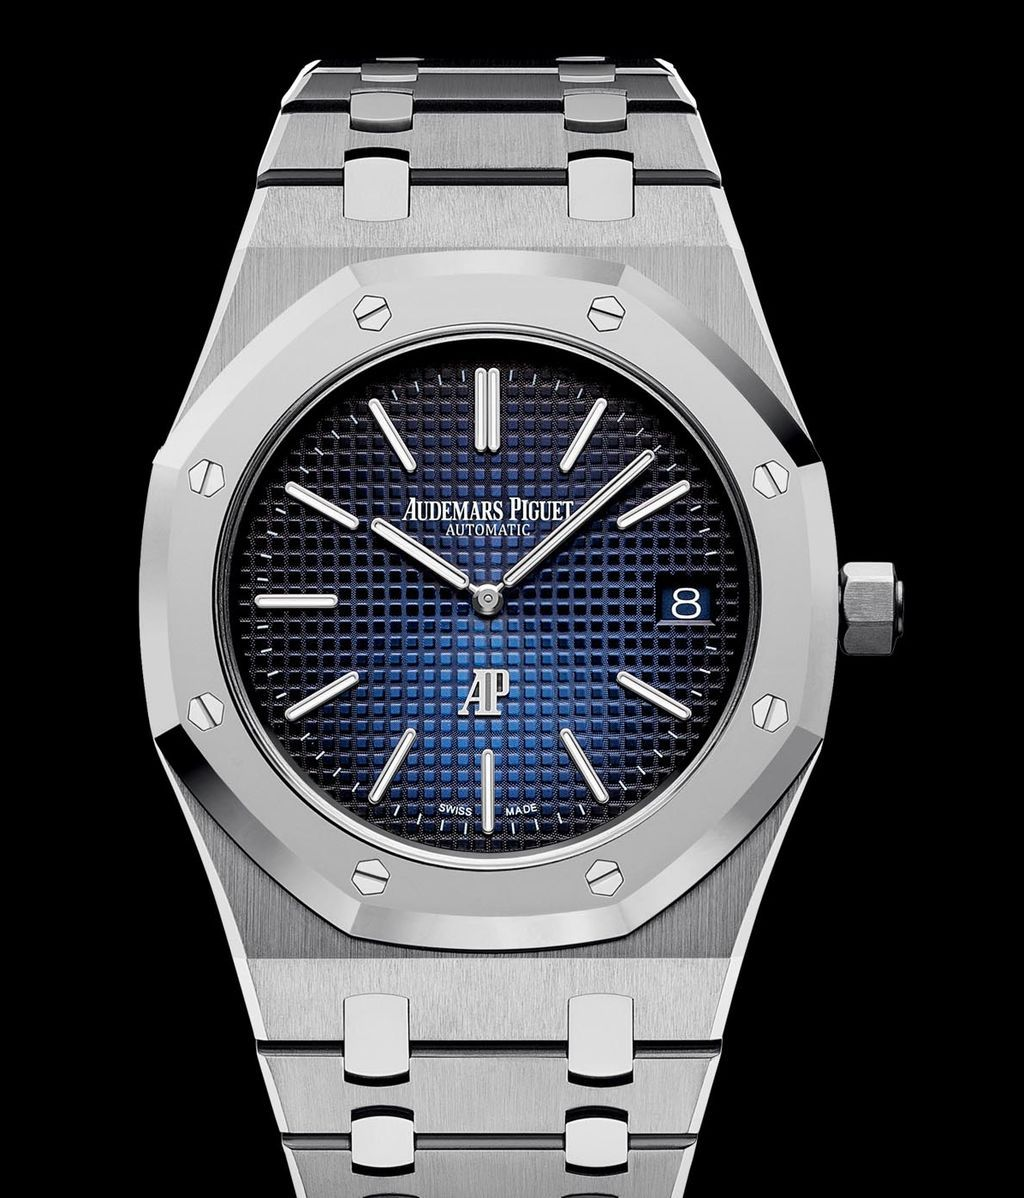 Audemars Piguet Royal Oak Jumbo Extra